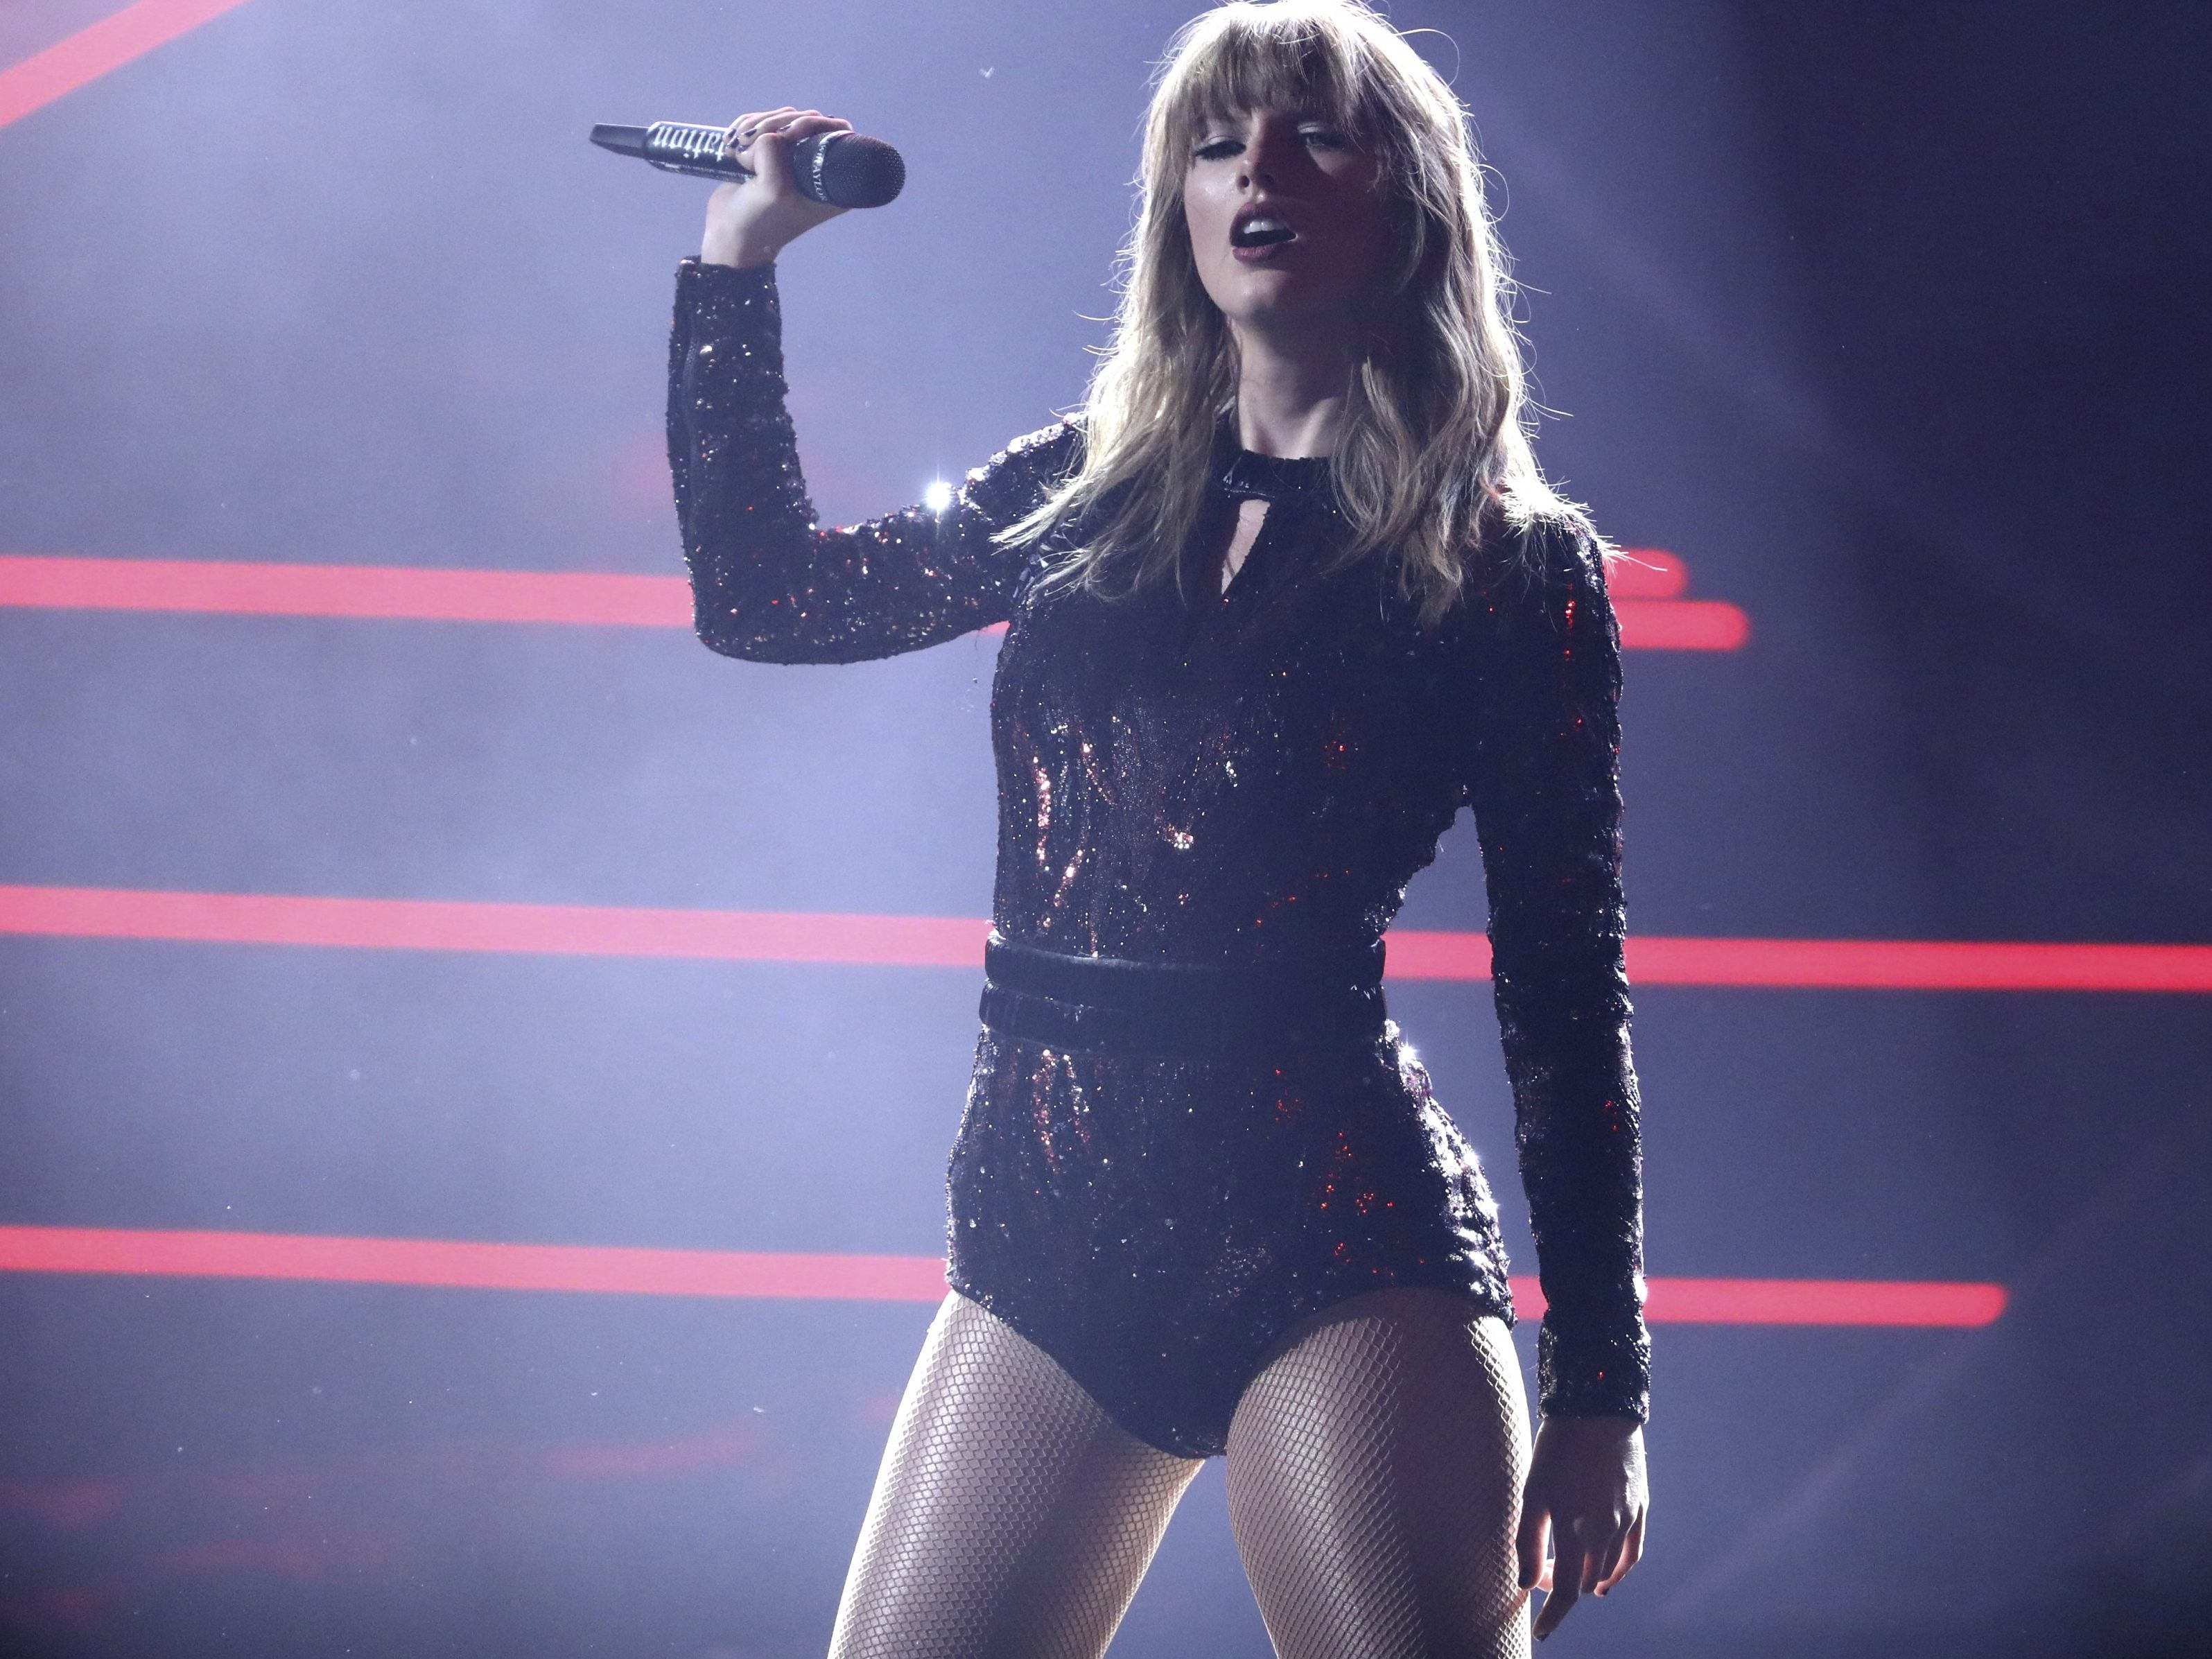 Die Gewinnerin der American Music Awards 2018 war Taylor Swift.